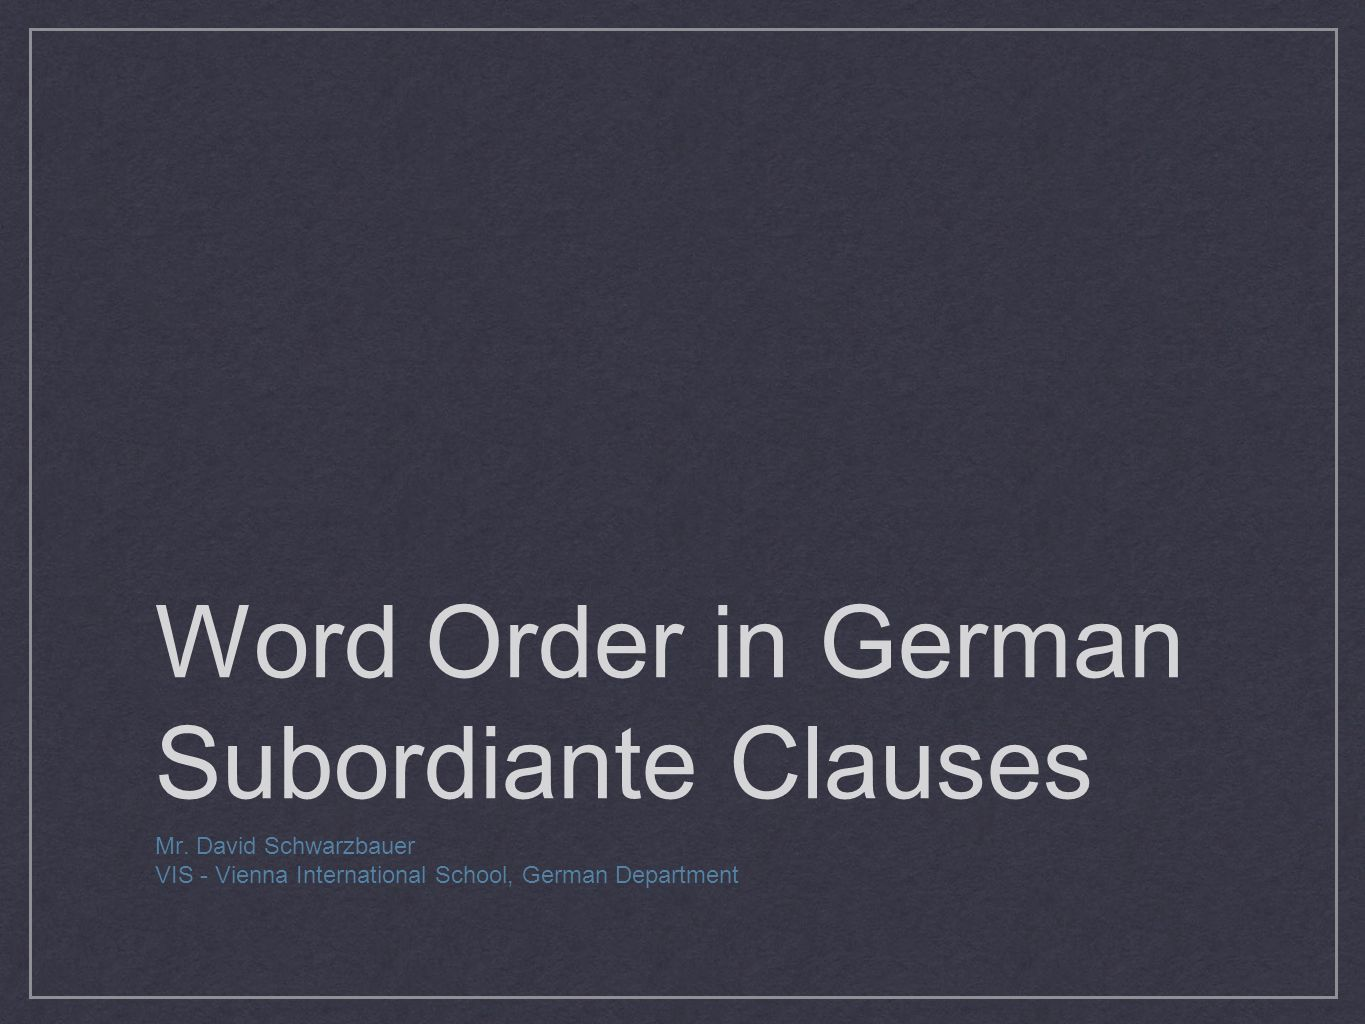 Word Order in German Subordiante Clauses